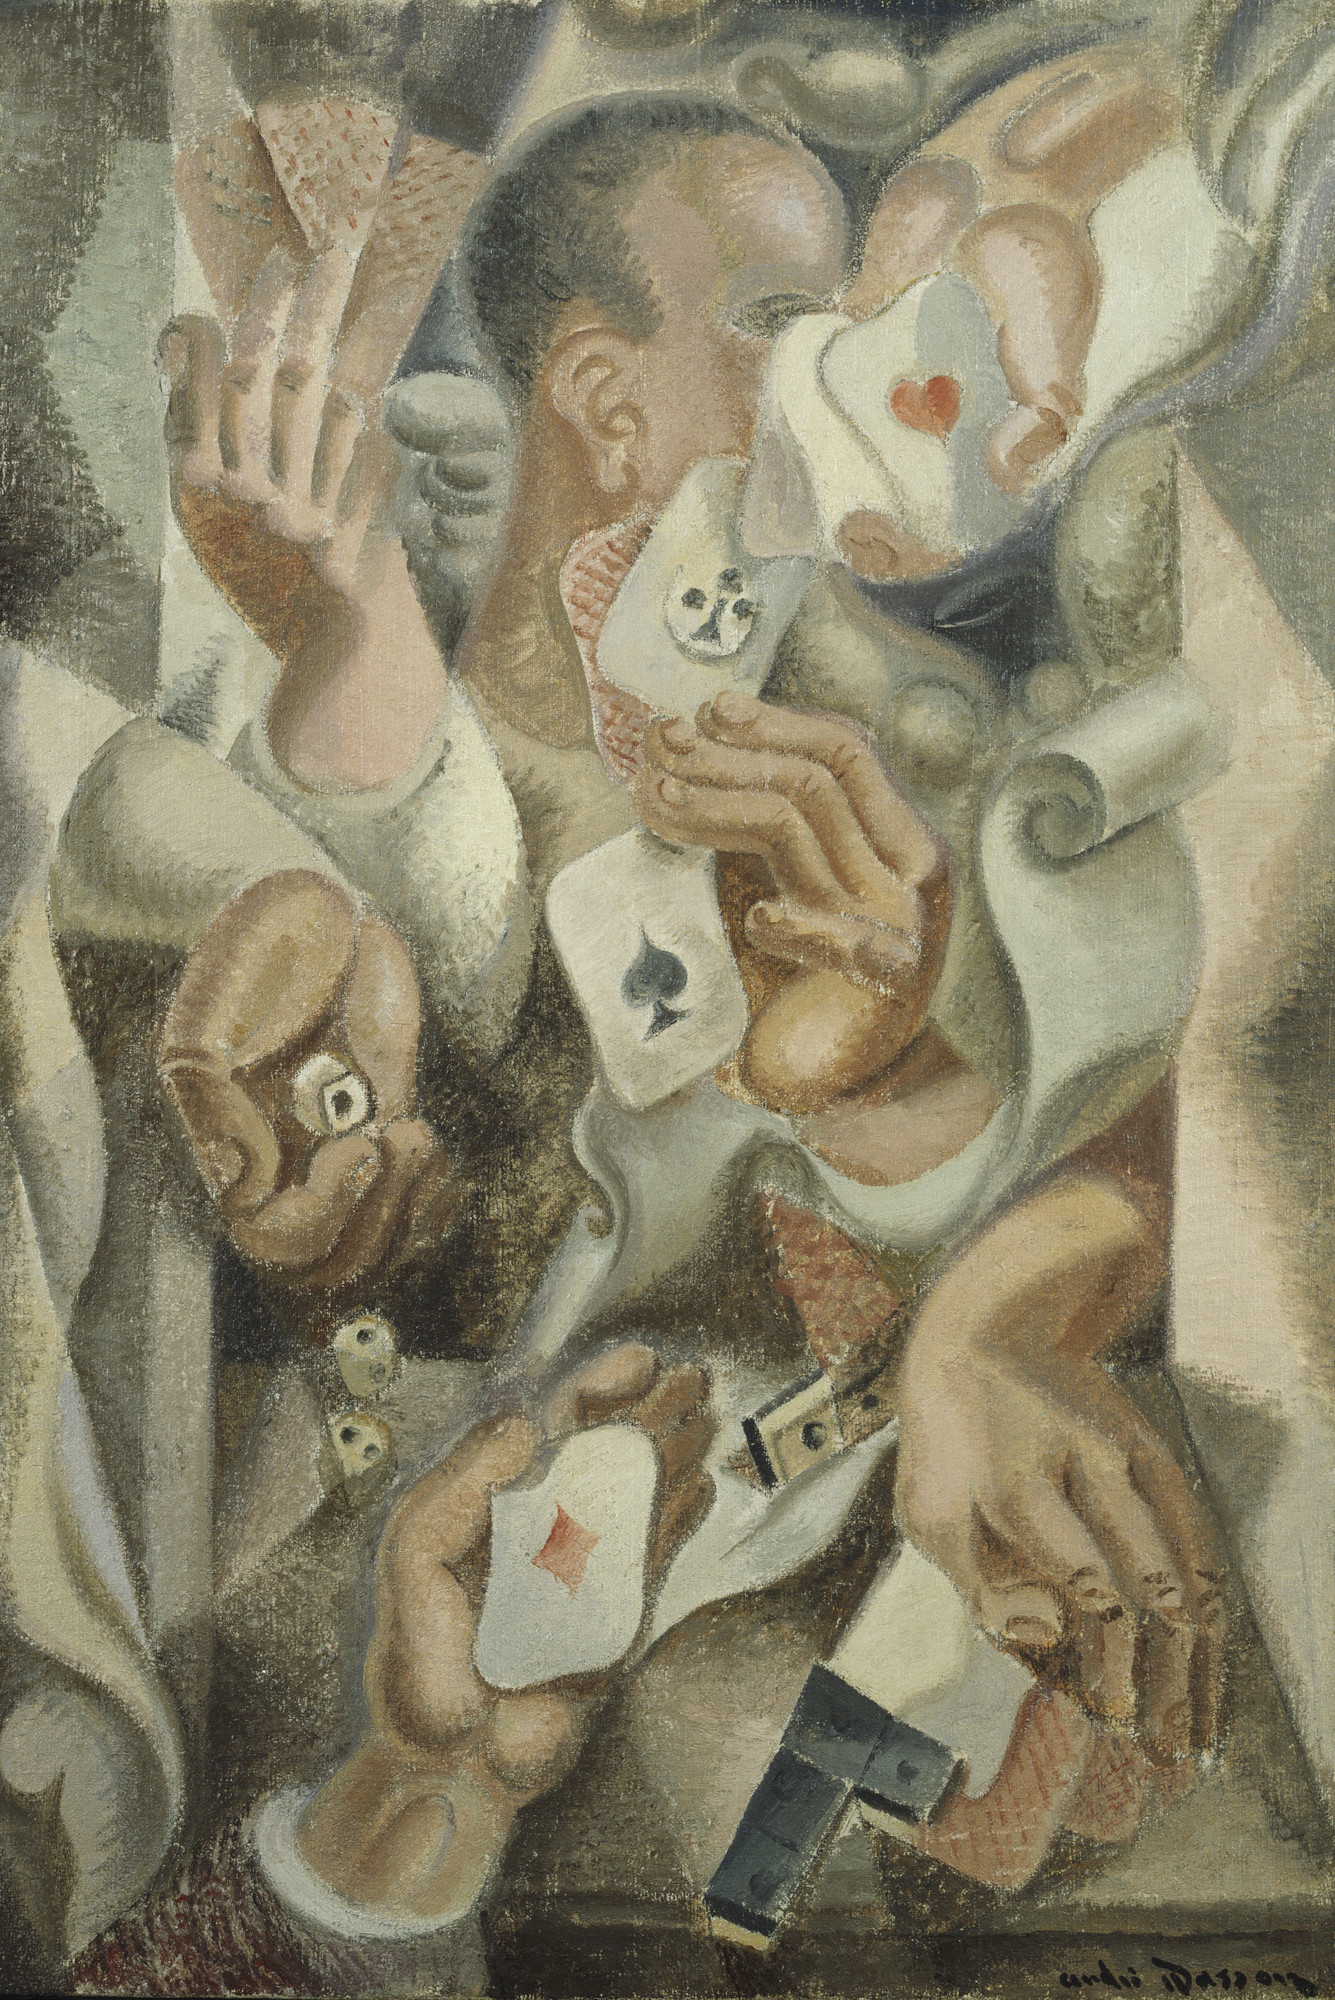 André Masson. Card Trick. 1923